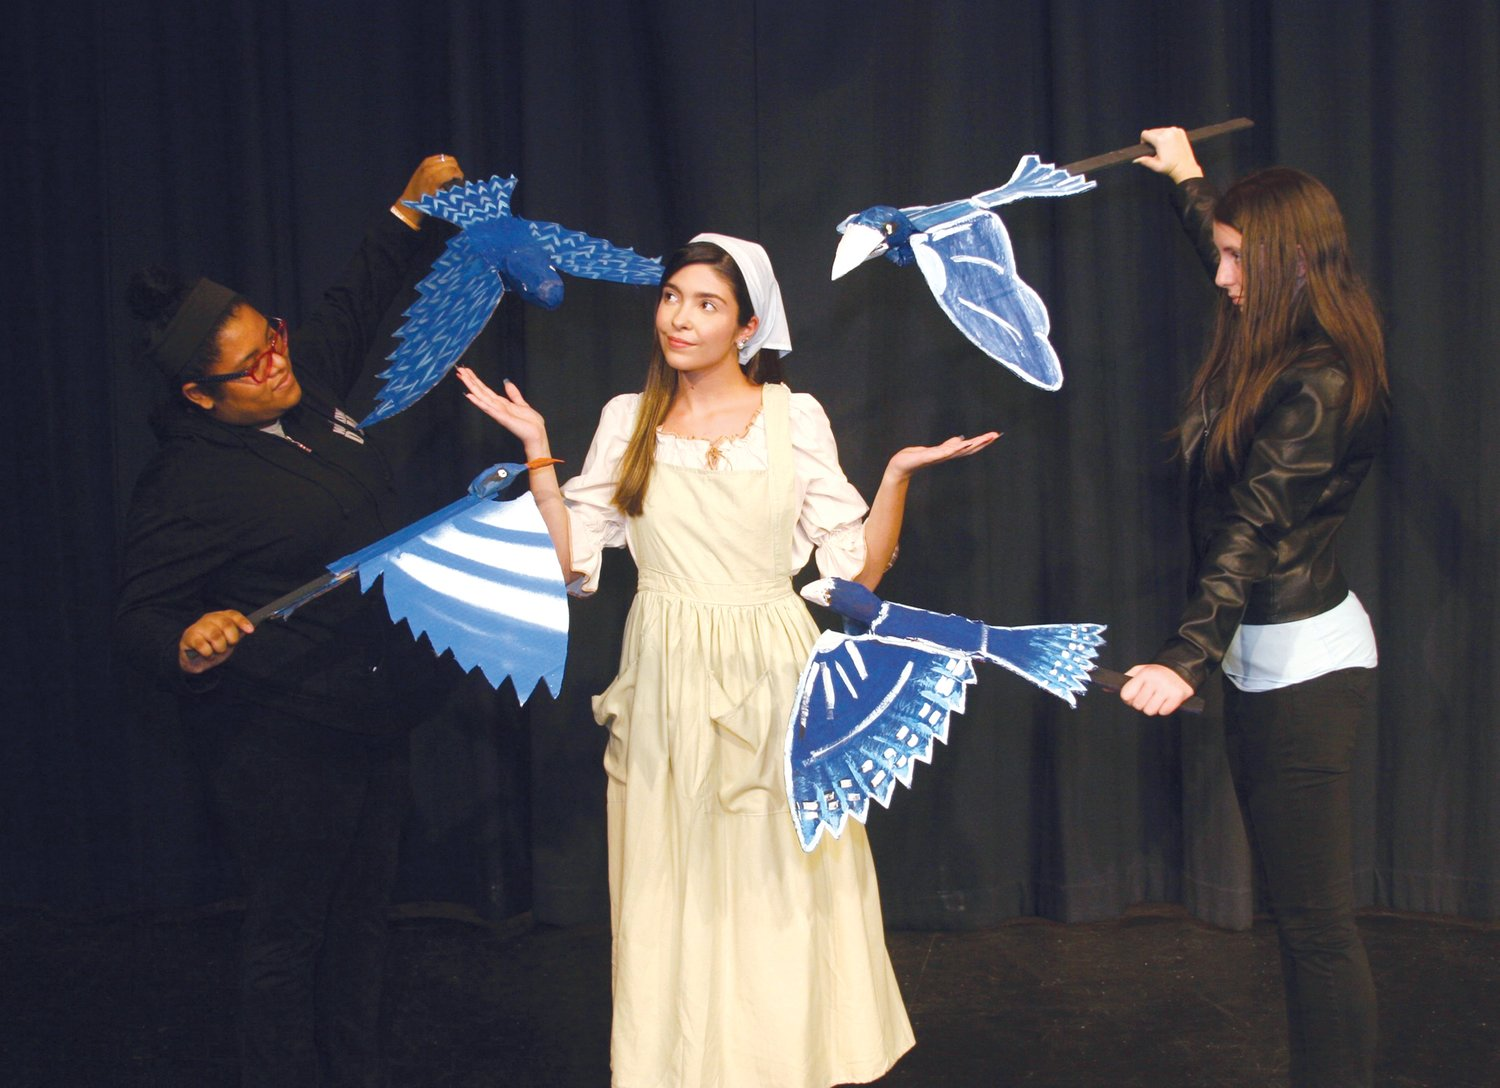 Cinderella (Kayli McIntosh, center) asks the birds to help her go to the King's Festival. Zy'kiuh Marsh, left, and Paige Colborne are puppeteers animating birds that were designed and created by JM artists.